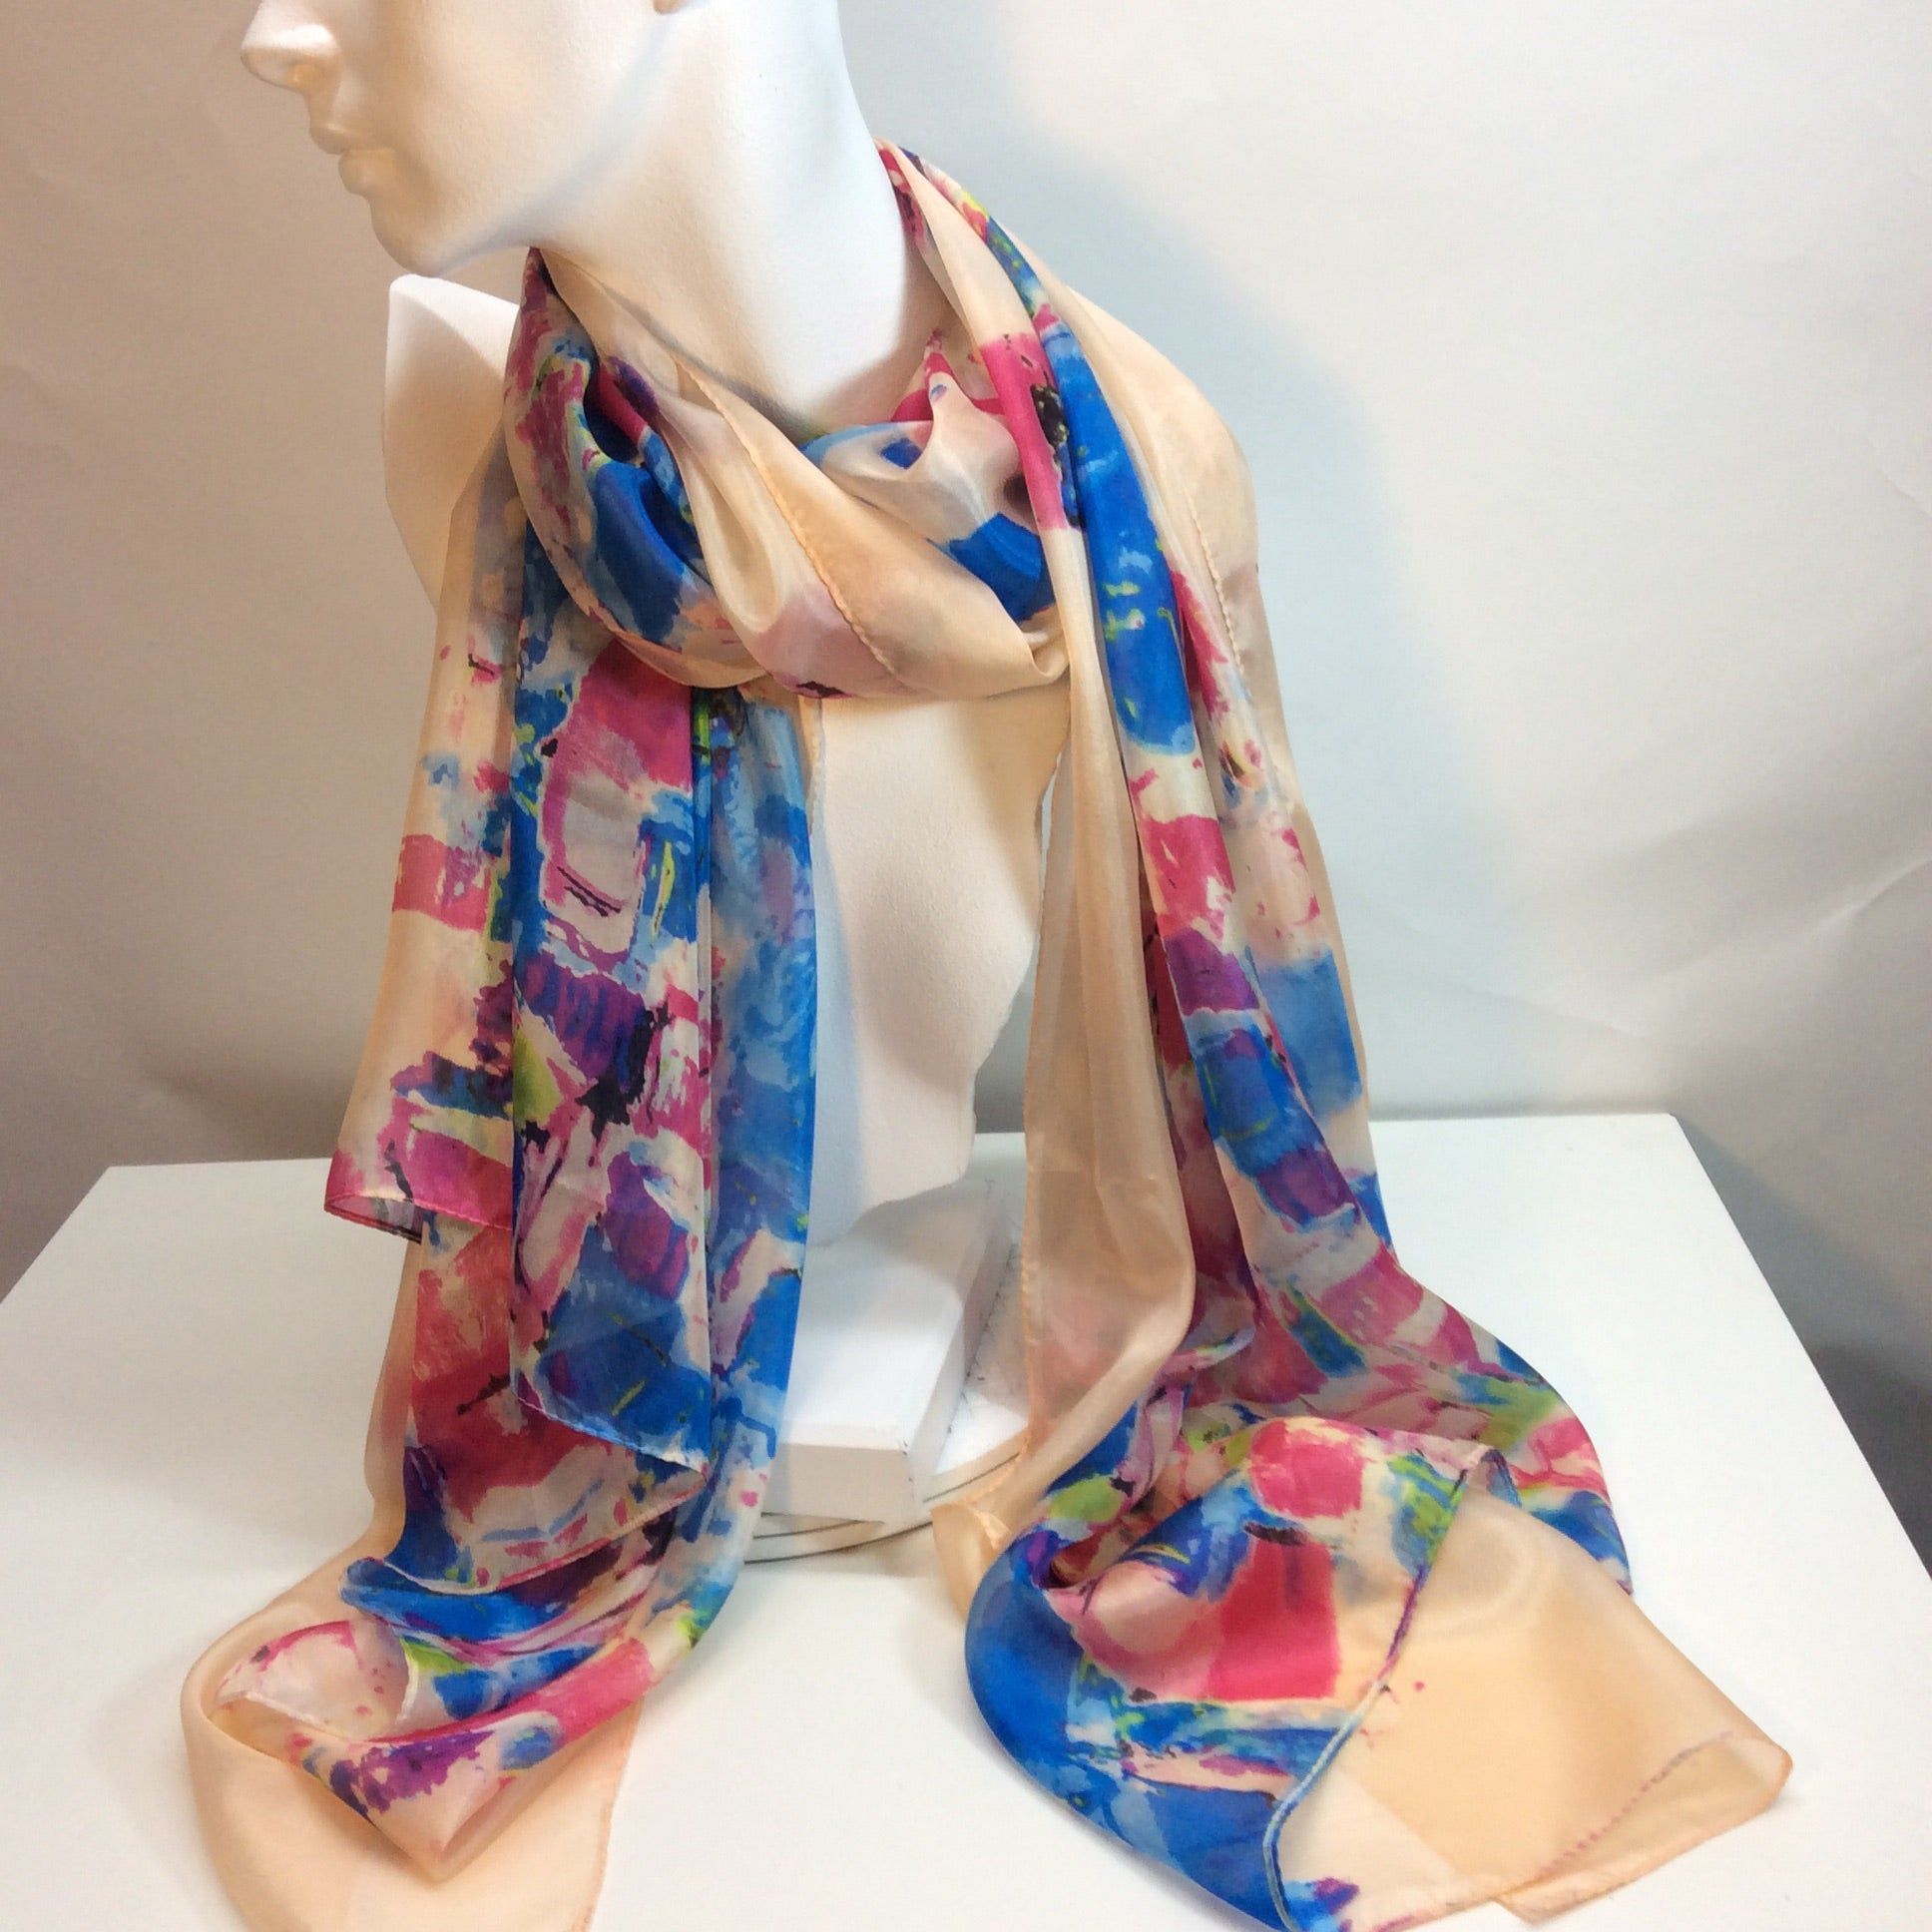 Abstract design of blues and pinks on shell pink background feature on this silk scarf